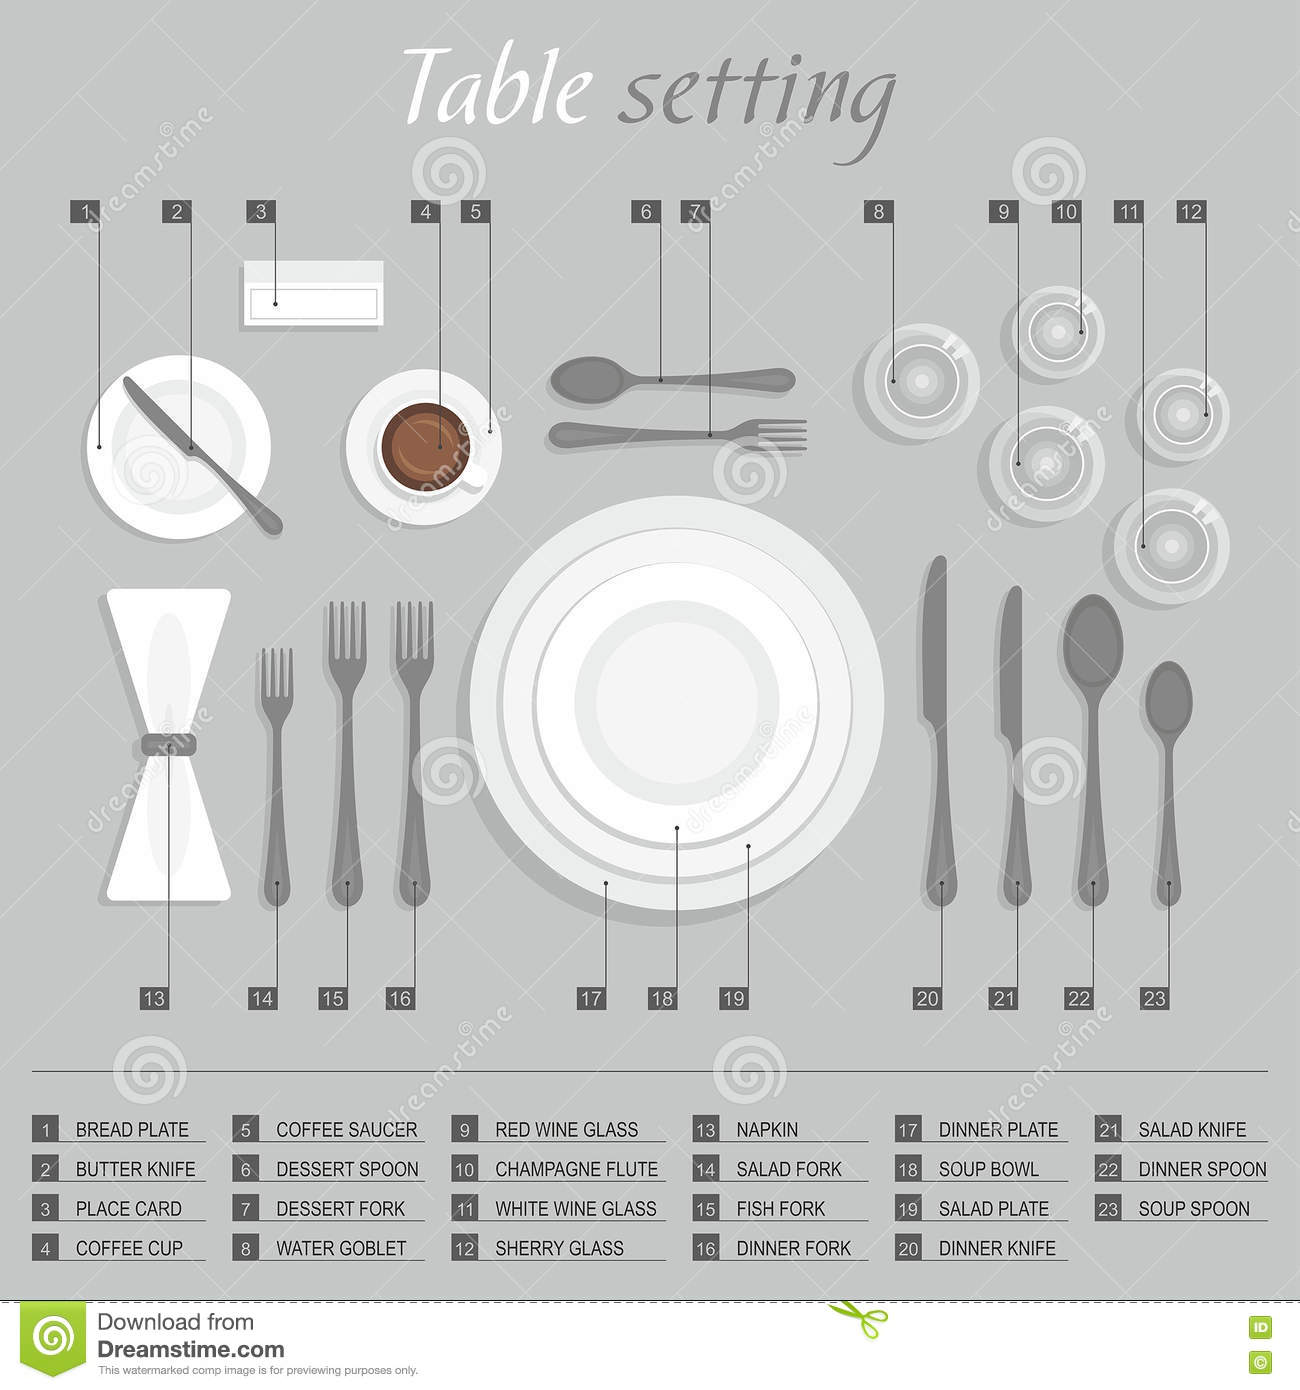 Table setting stock vector. Illustration of food, breakfast - 81685649